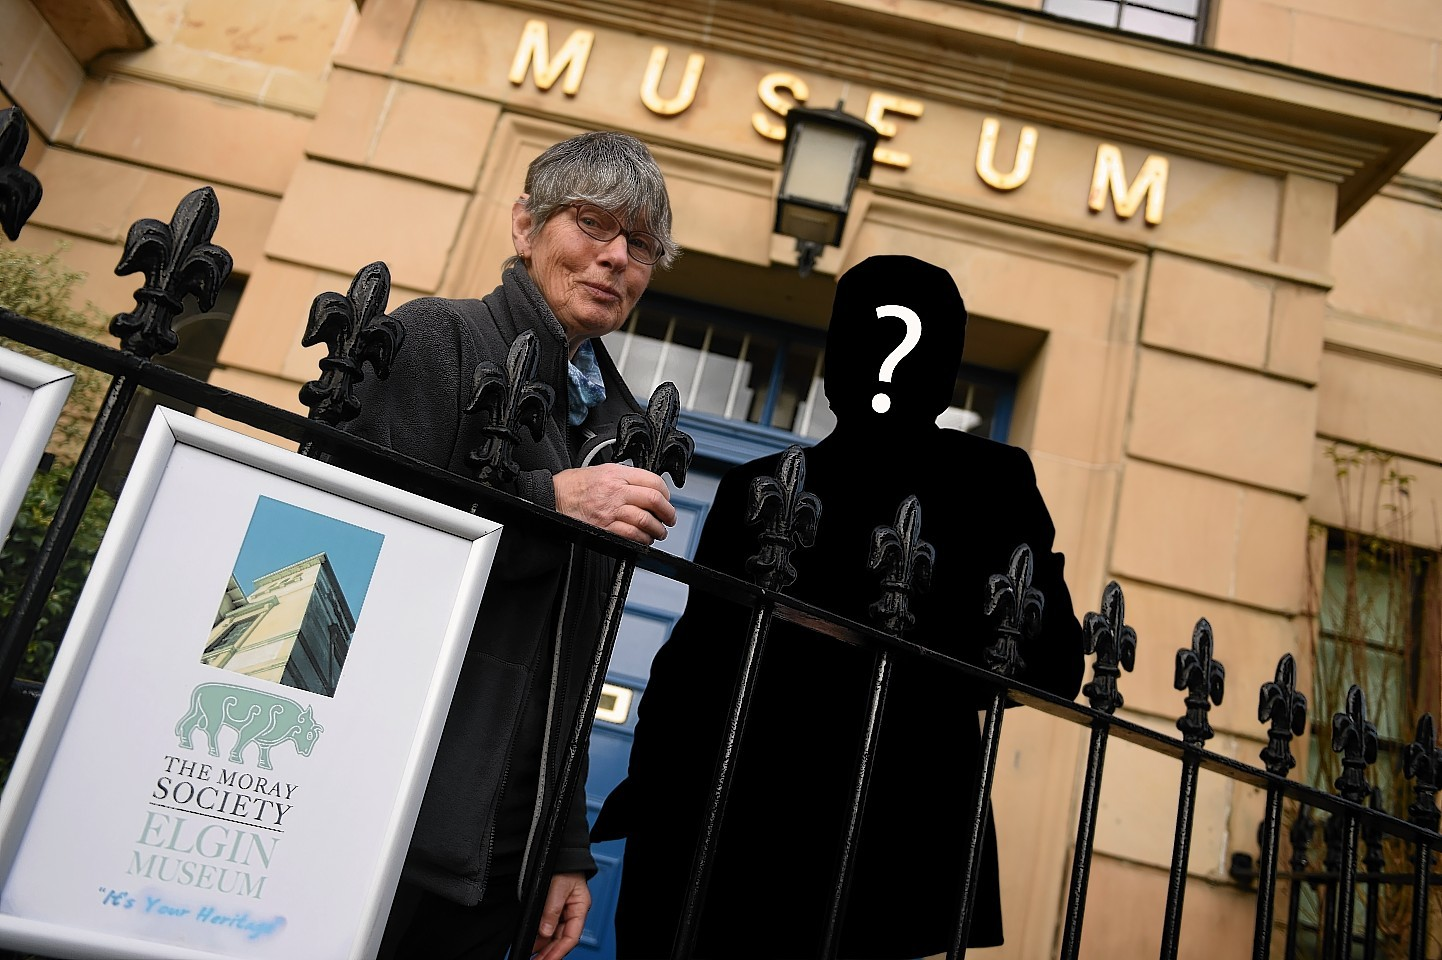 Who is Elgin Museum's mystery benefactor?